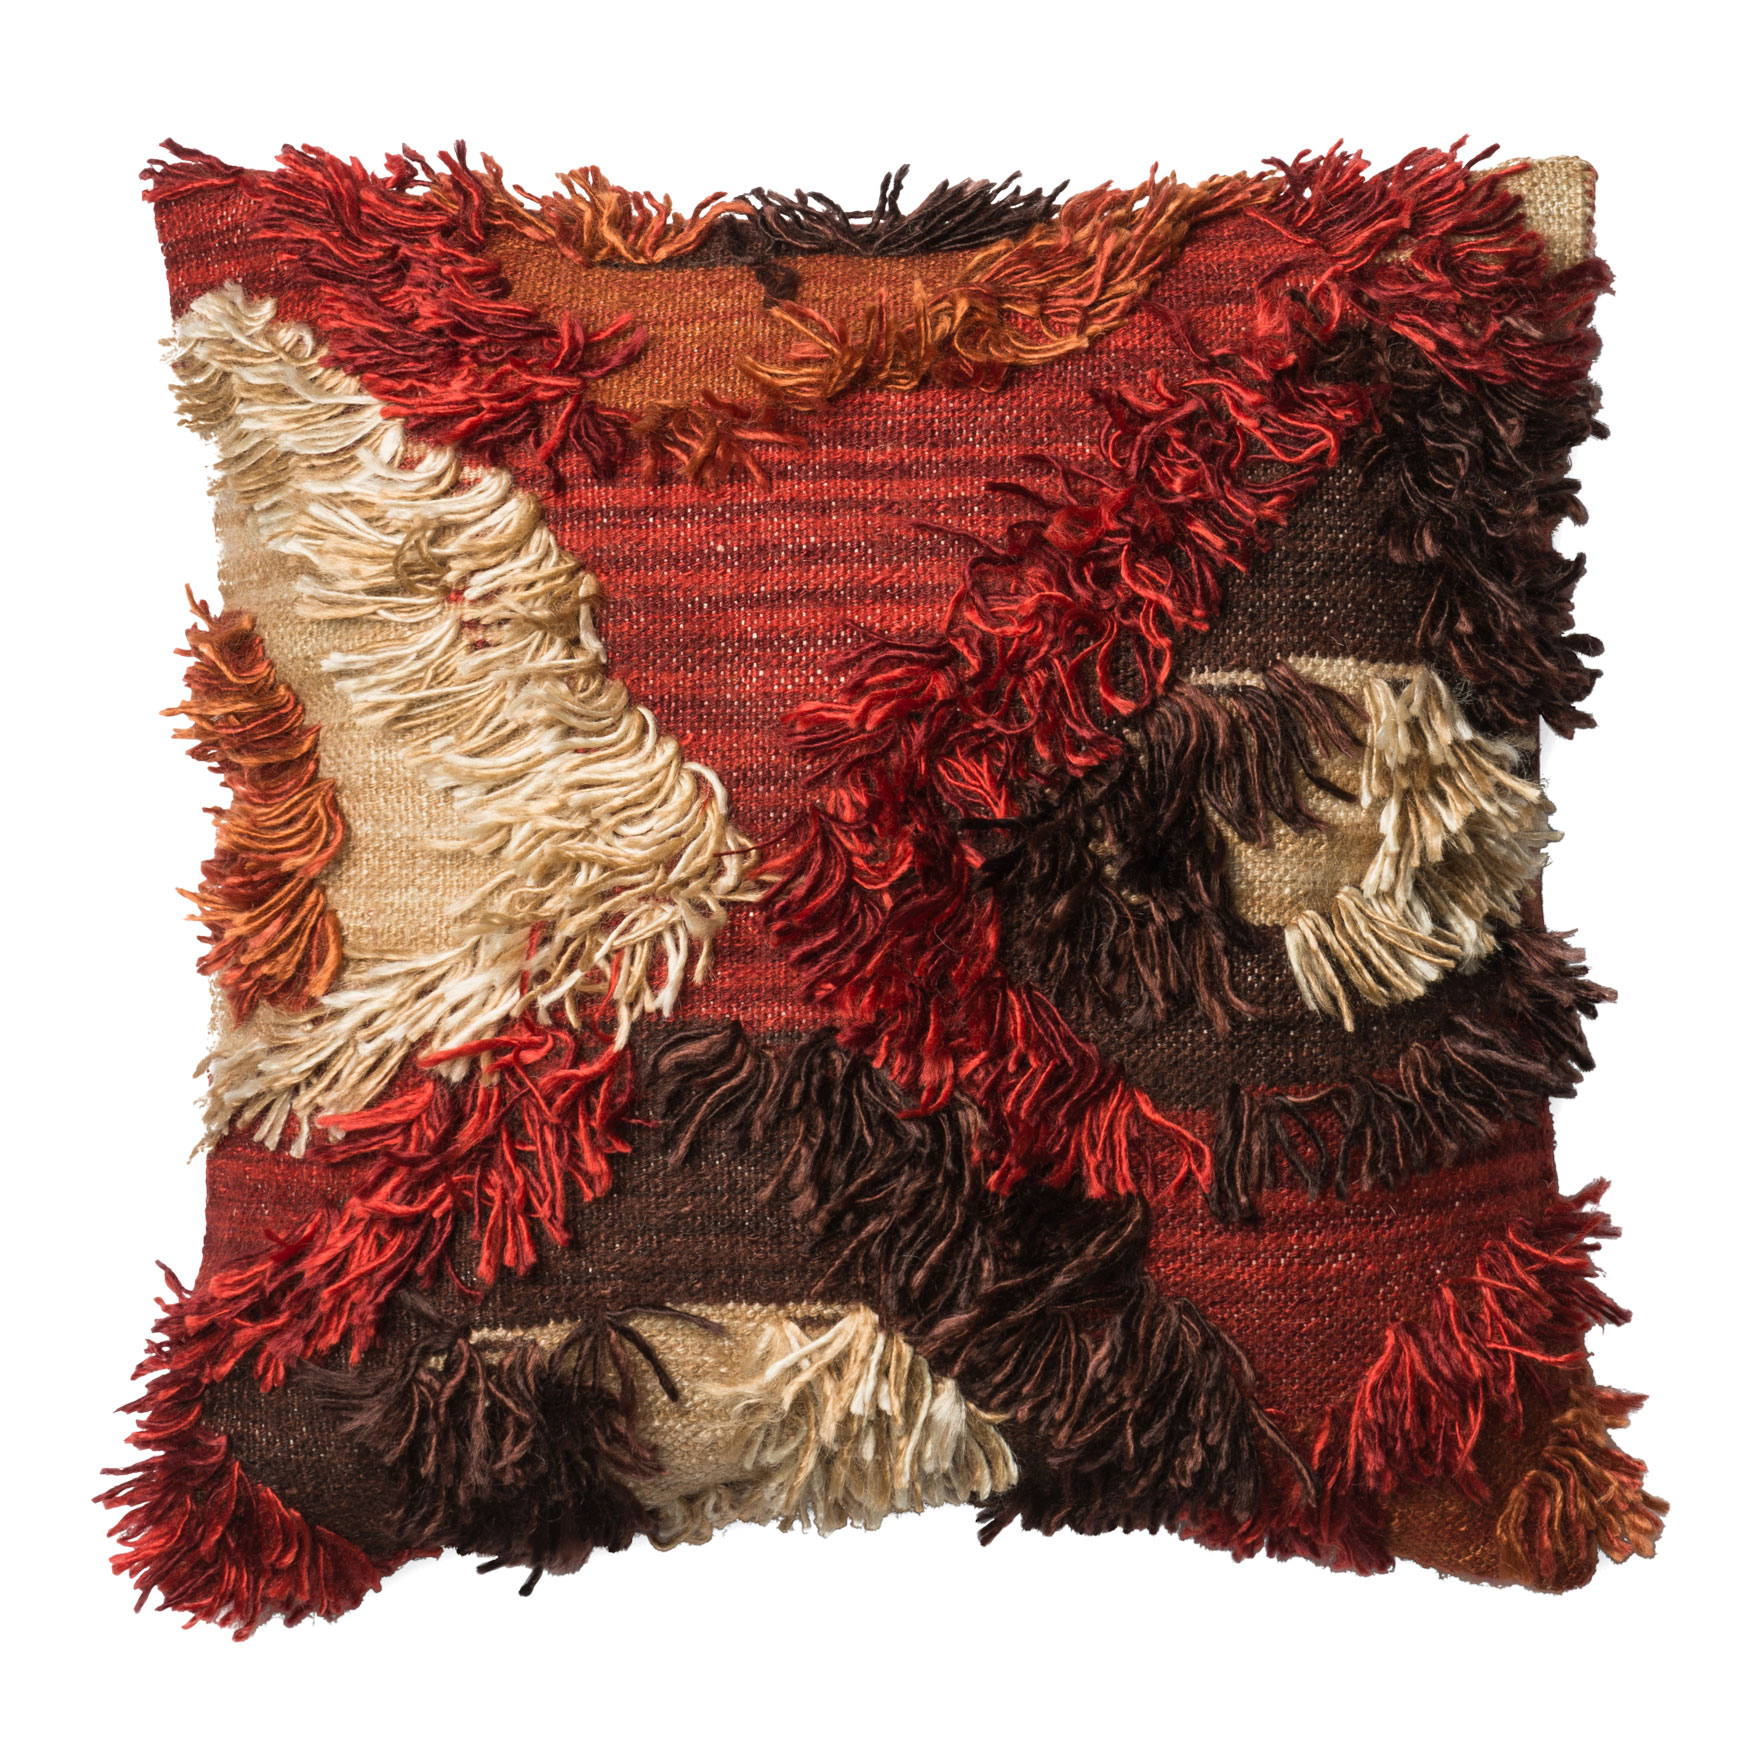 Shaggy Bohemian Fire Decorative Pillow, SPICE